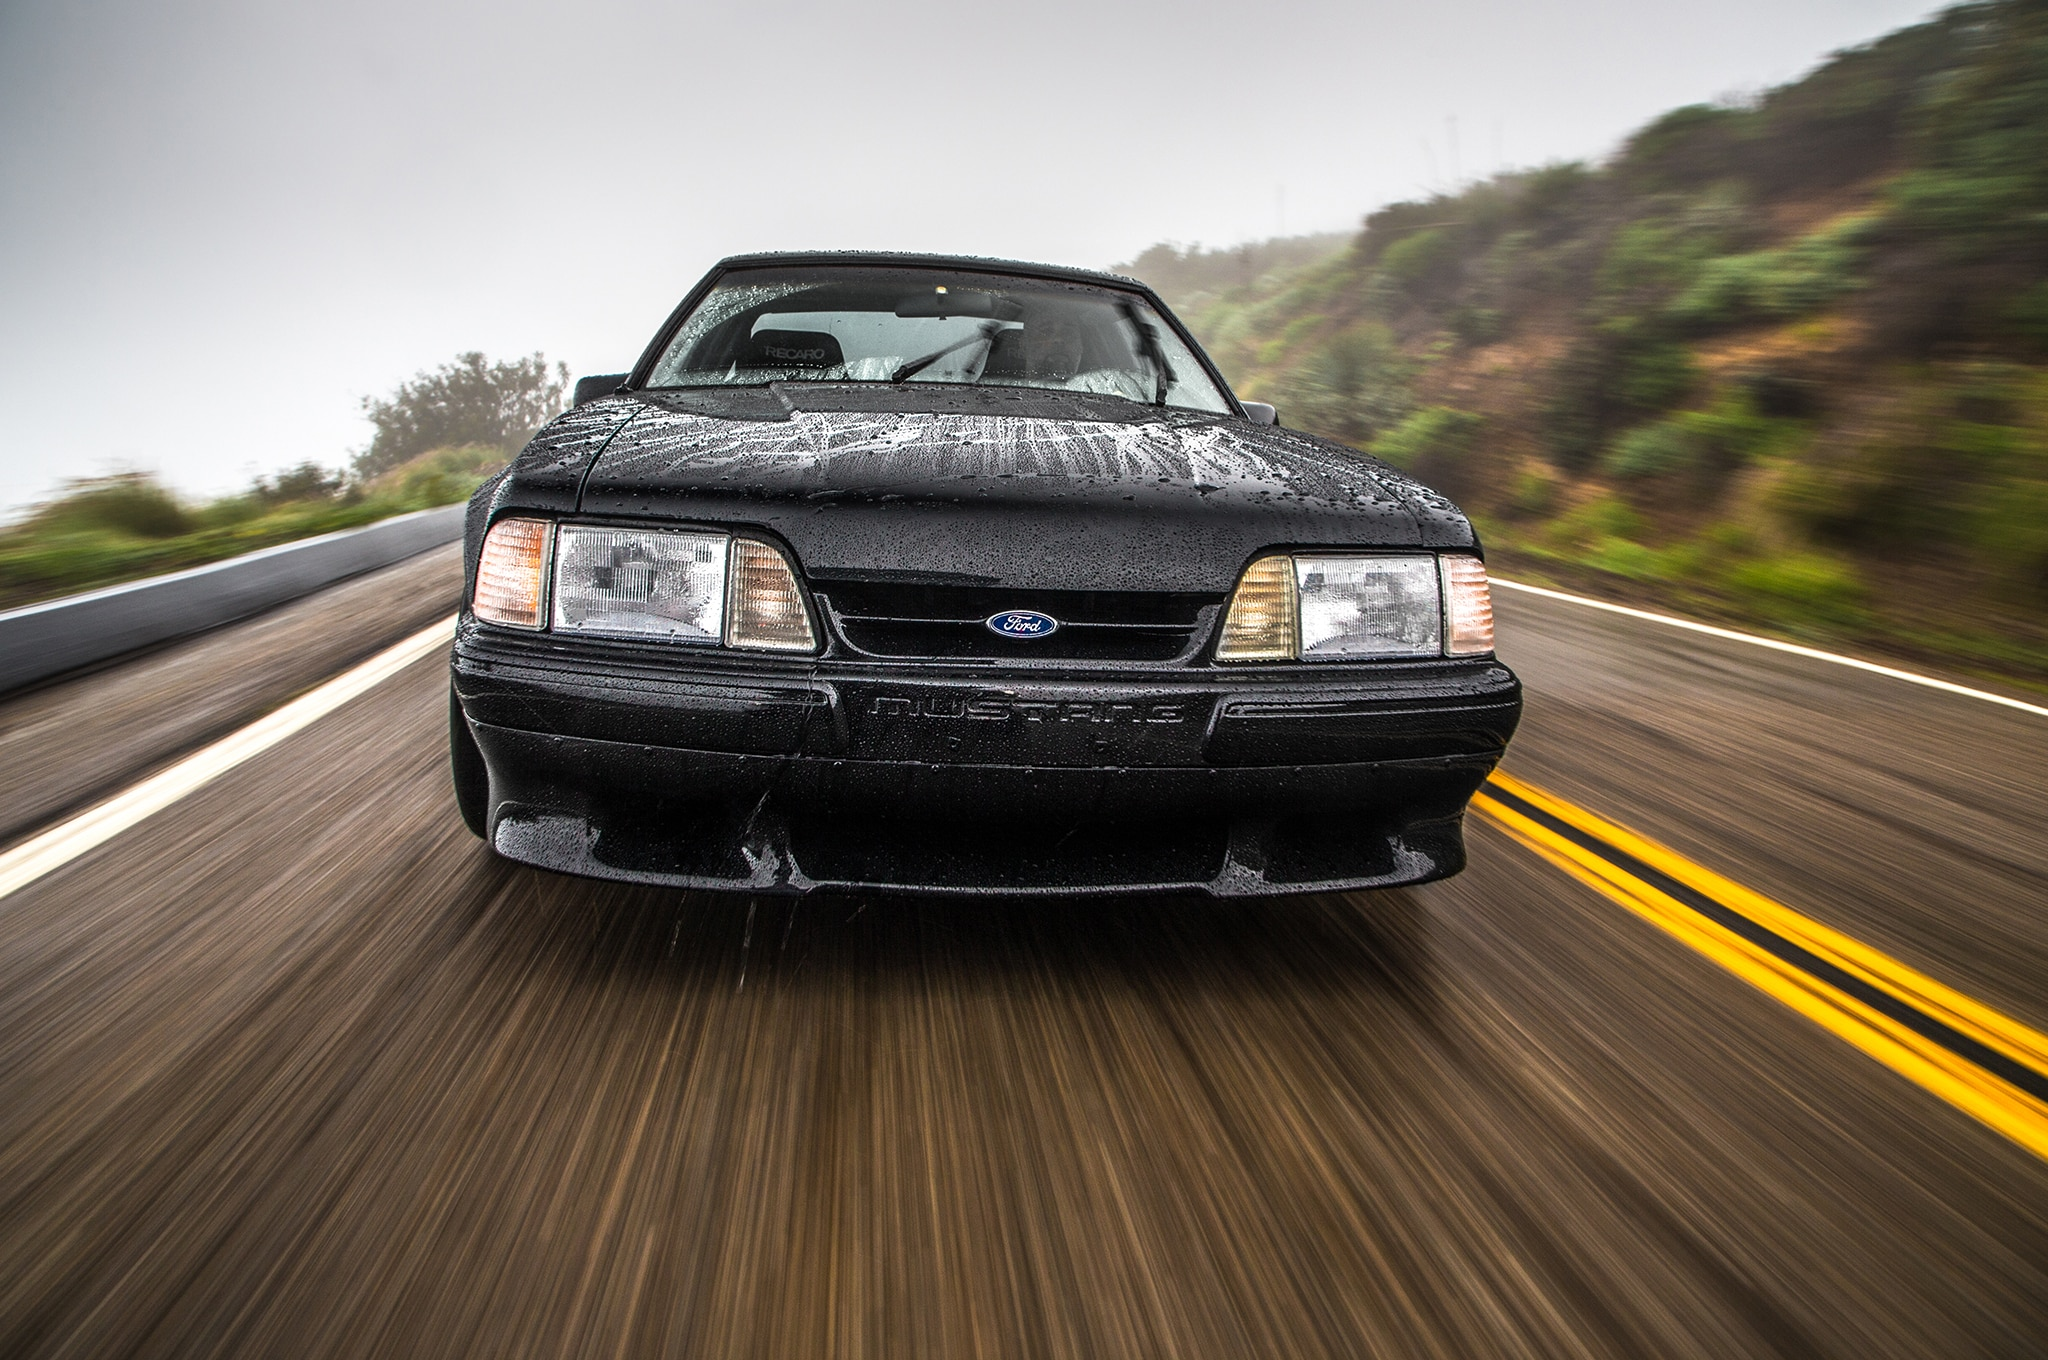 1988 Ford Mustang LX 5 0 SSP Front View In Motion 01